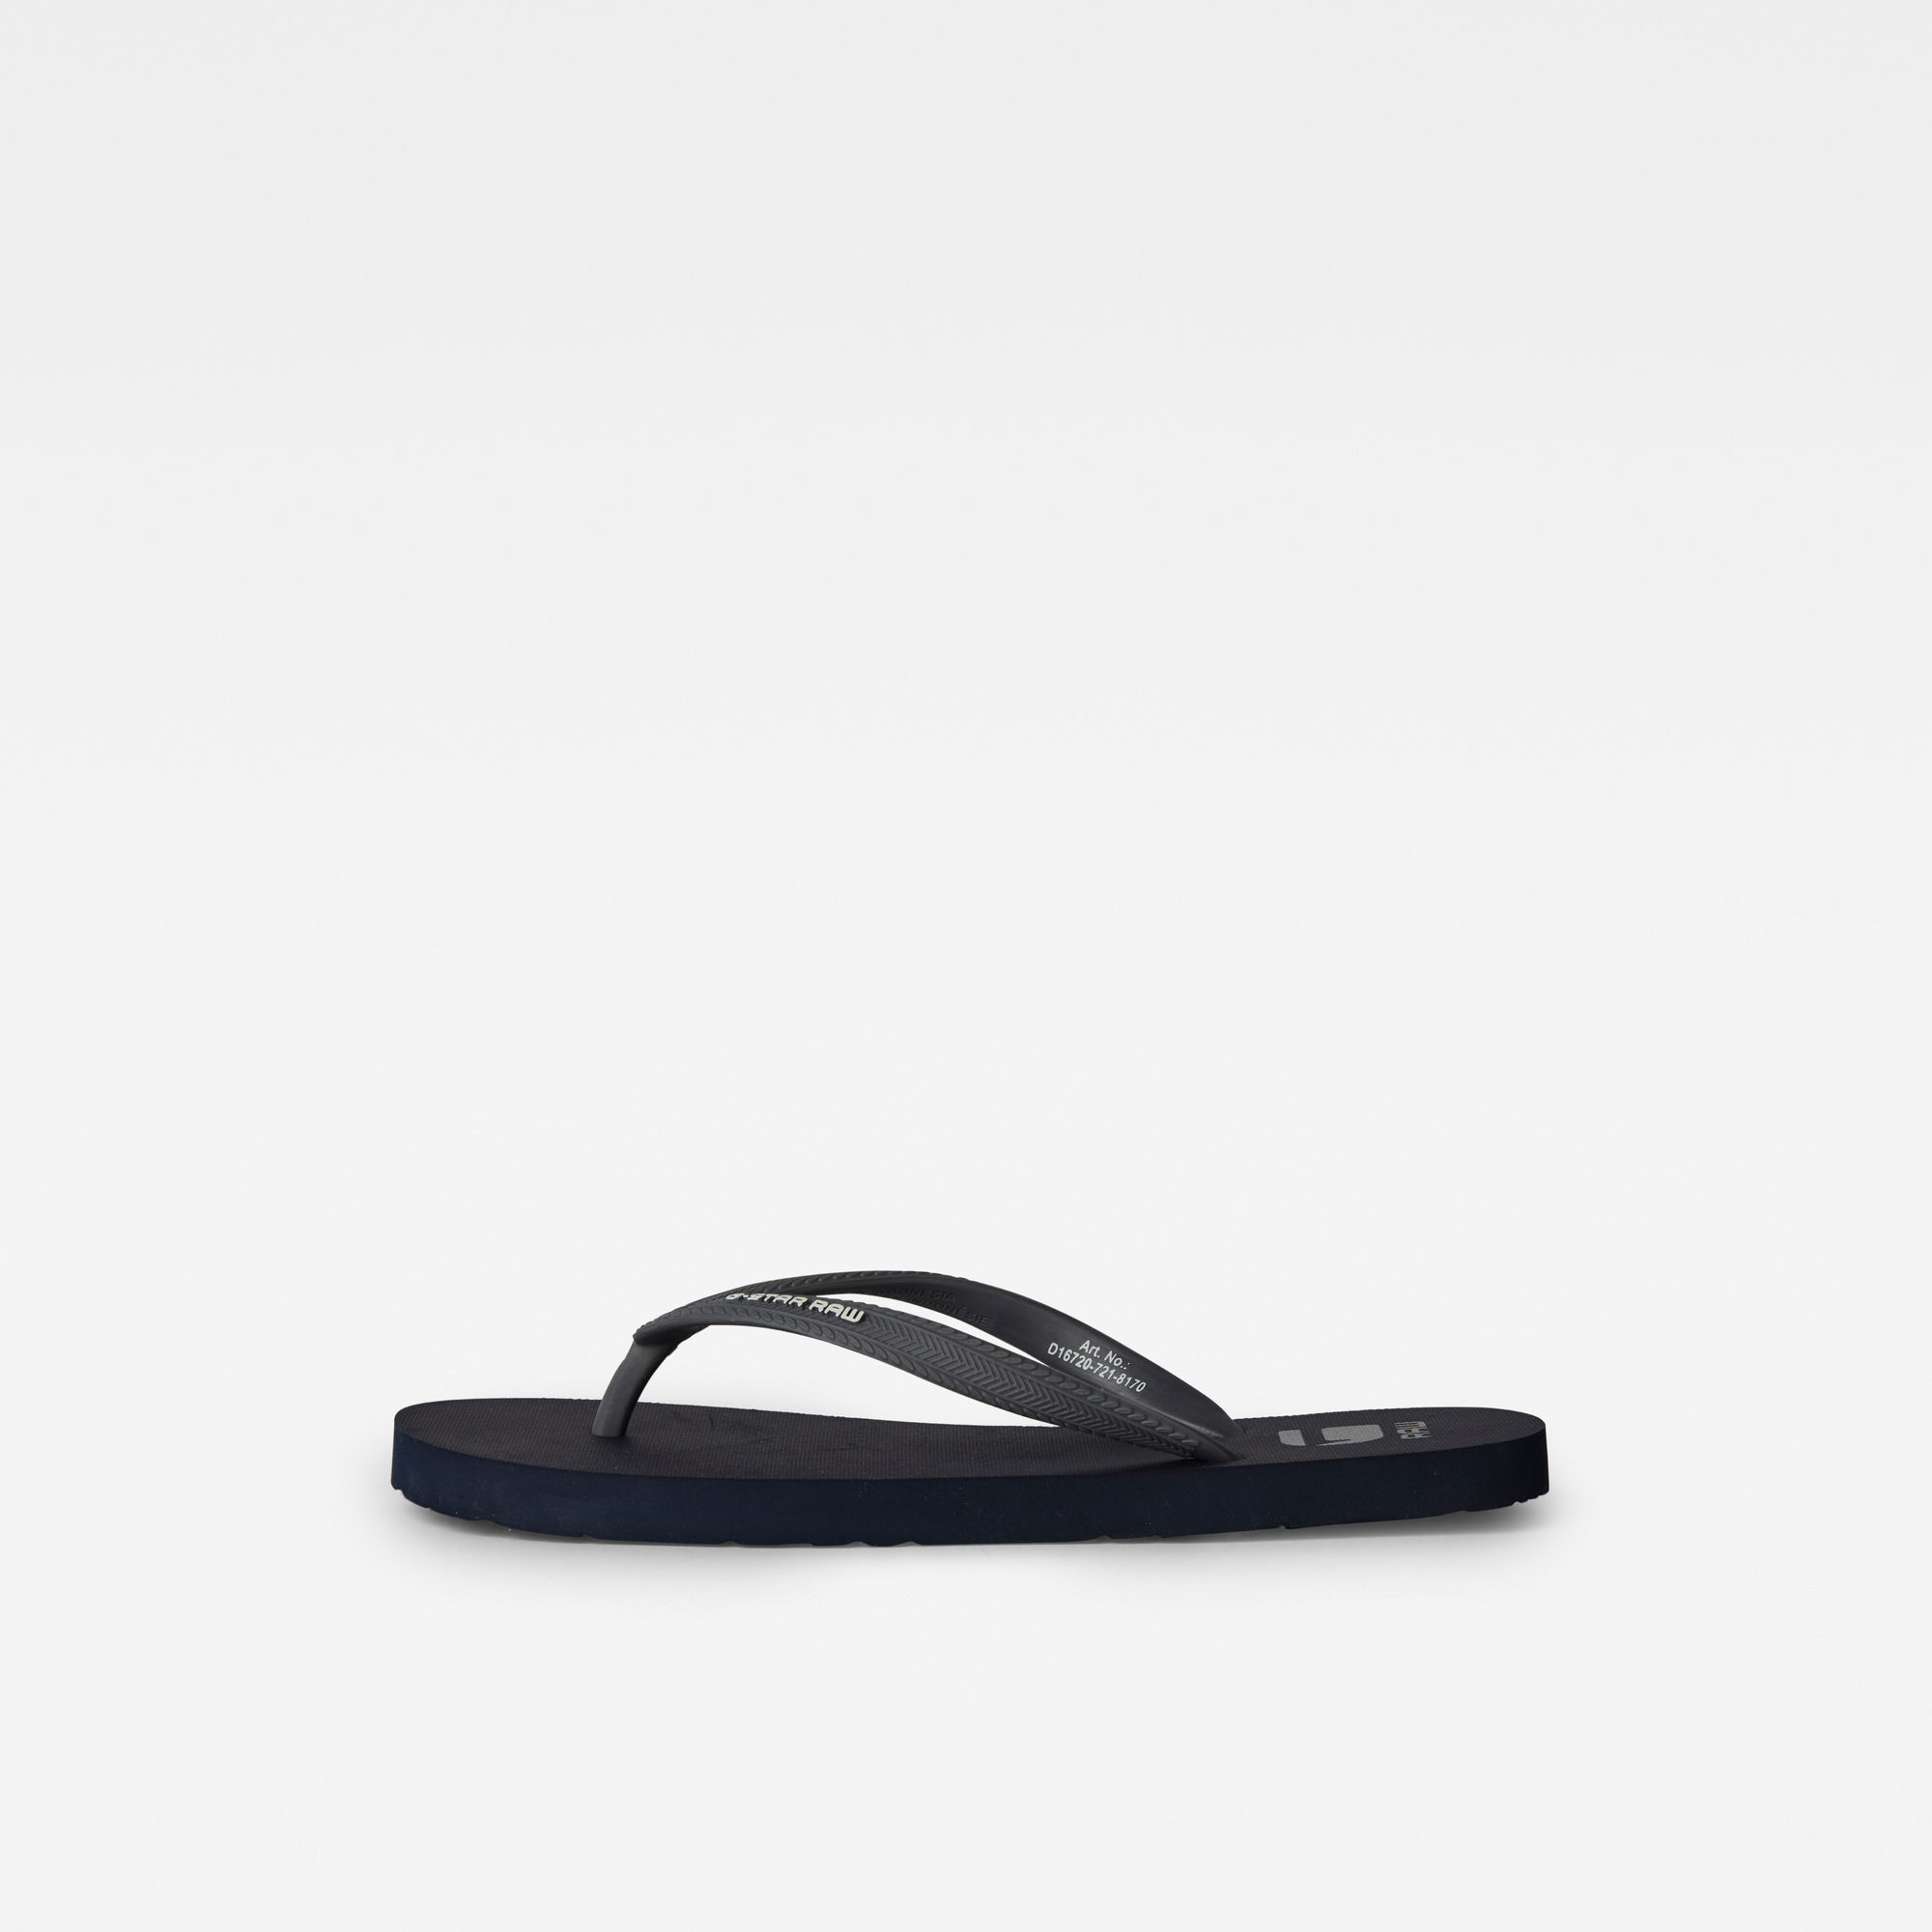 G-Star RAW Dames Carnic Slippers Donkerblauw